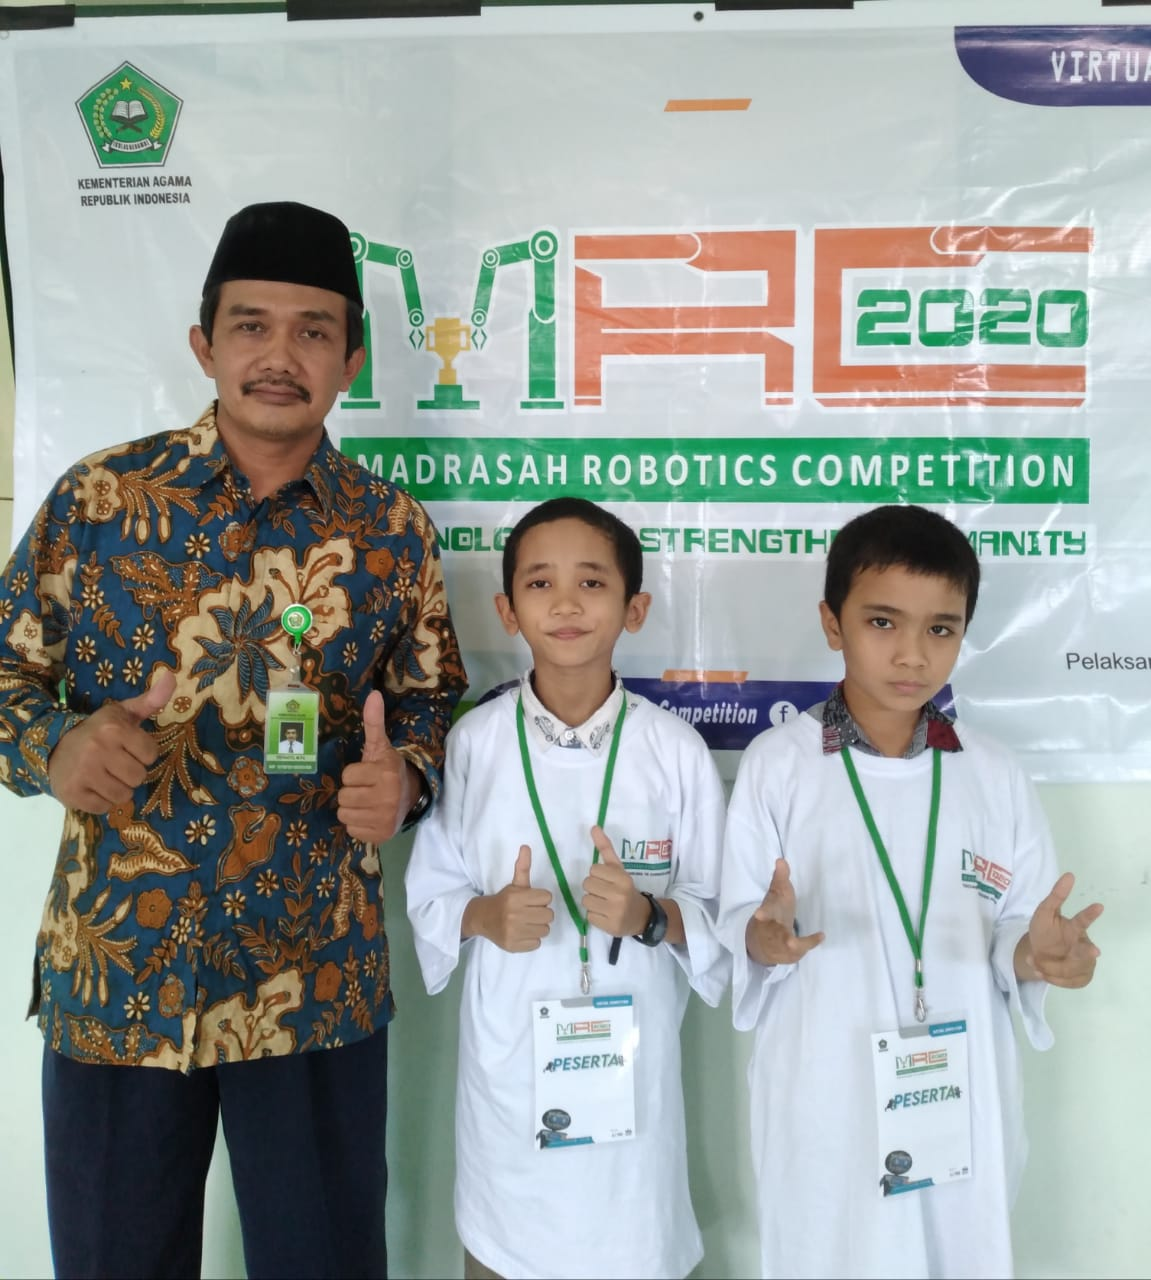 30 Besar Nasional Madrasah Robotics Competition 2020